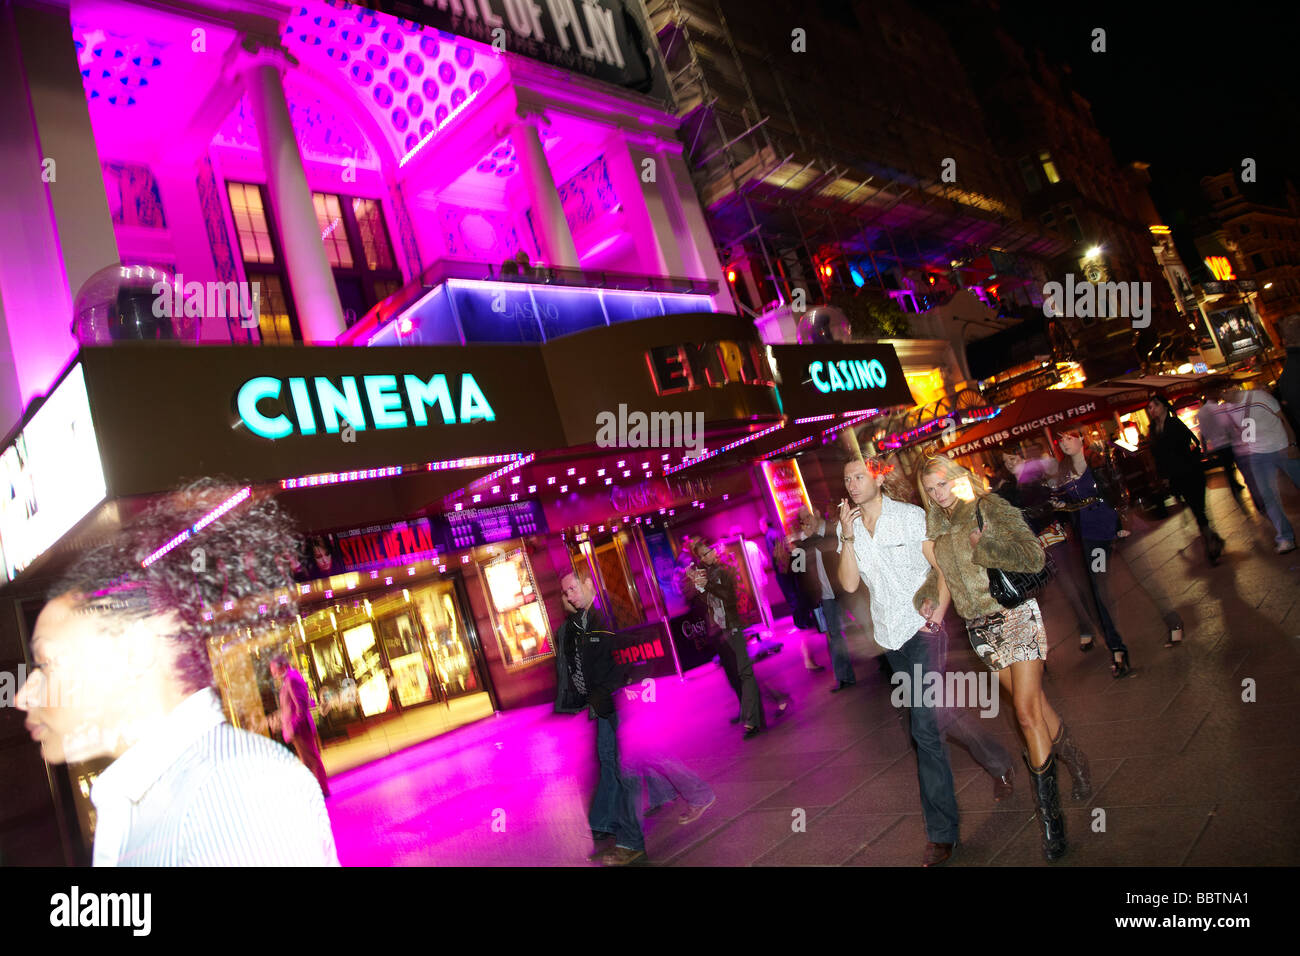 Leicester Square at night, London - Stock Image